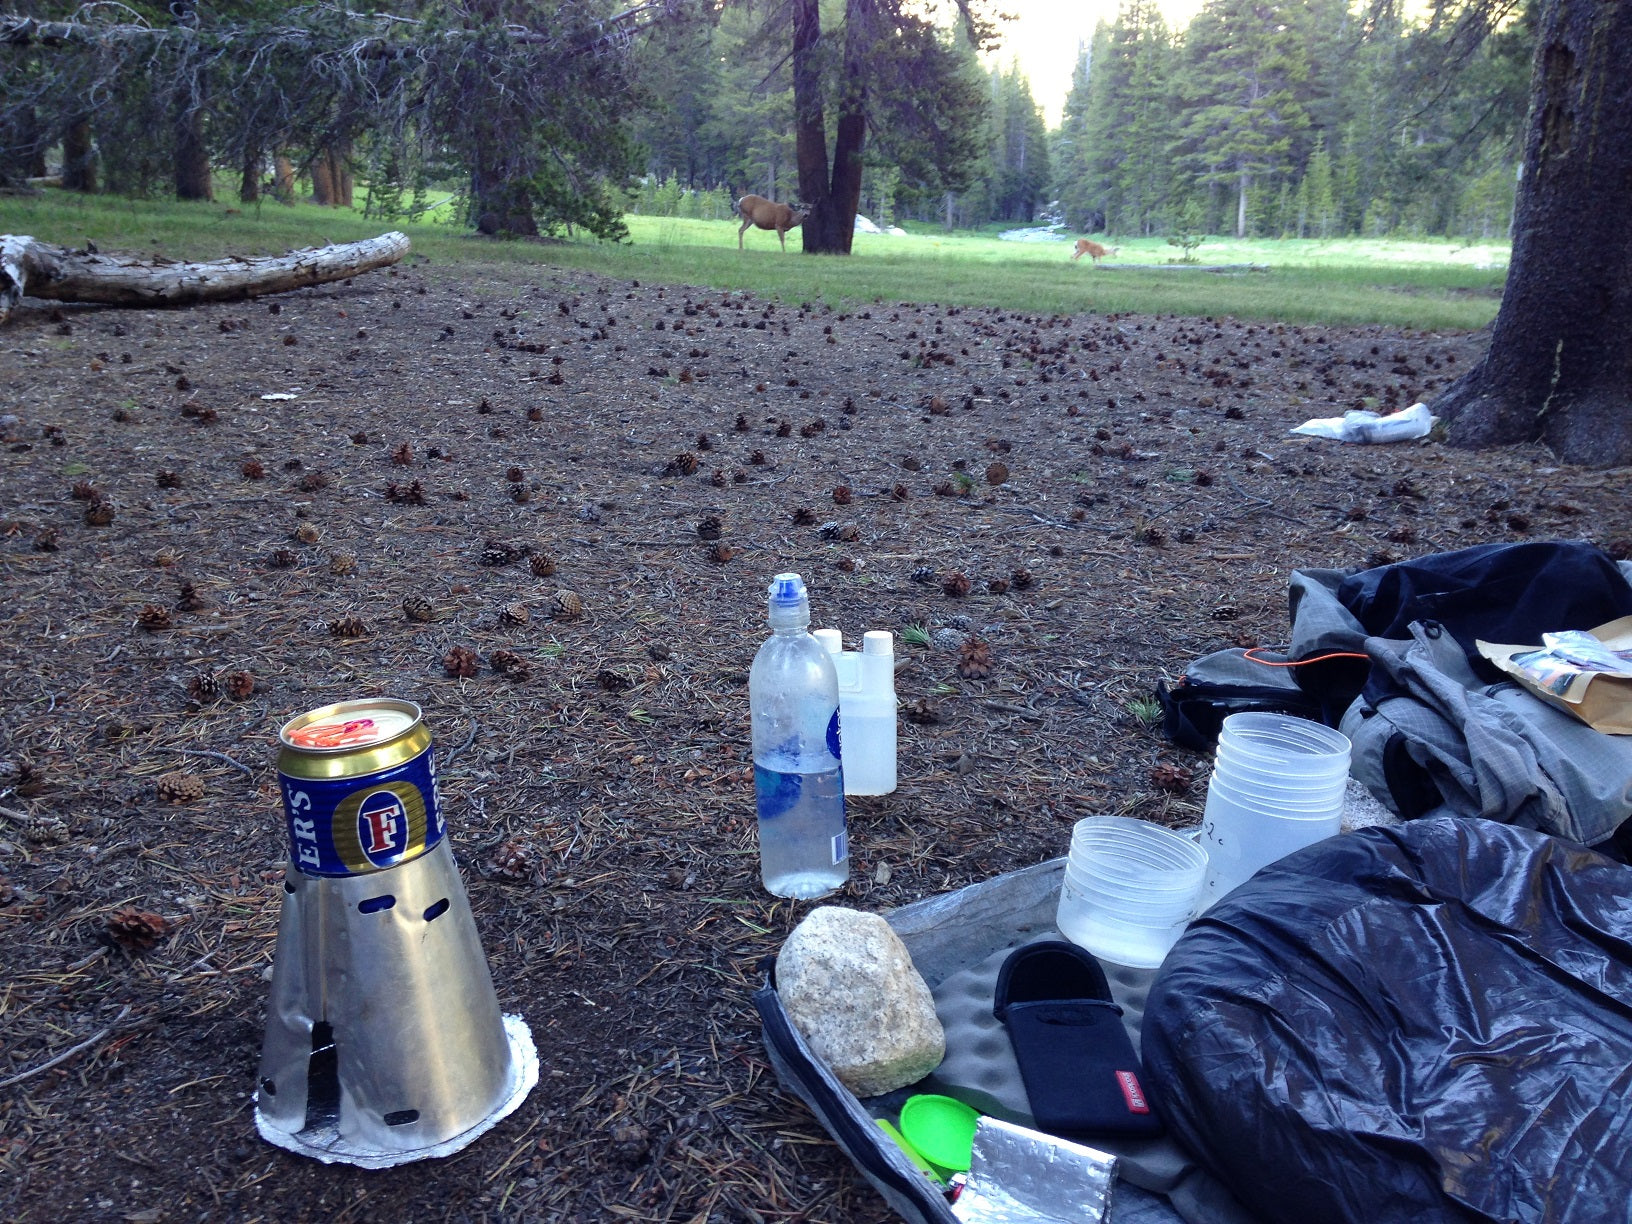 Bill McKenzie carried his KegF along the whole PCT in 2017 and sends us this picture of the wildlife admiring this fine cooking system!